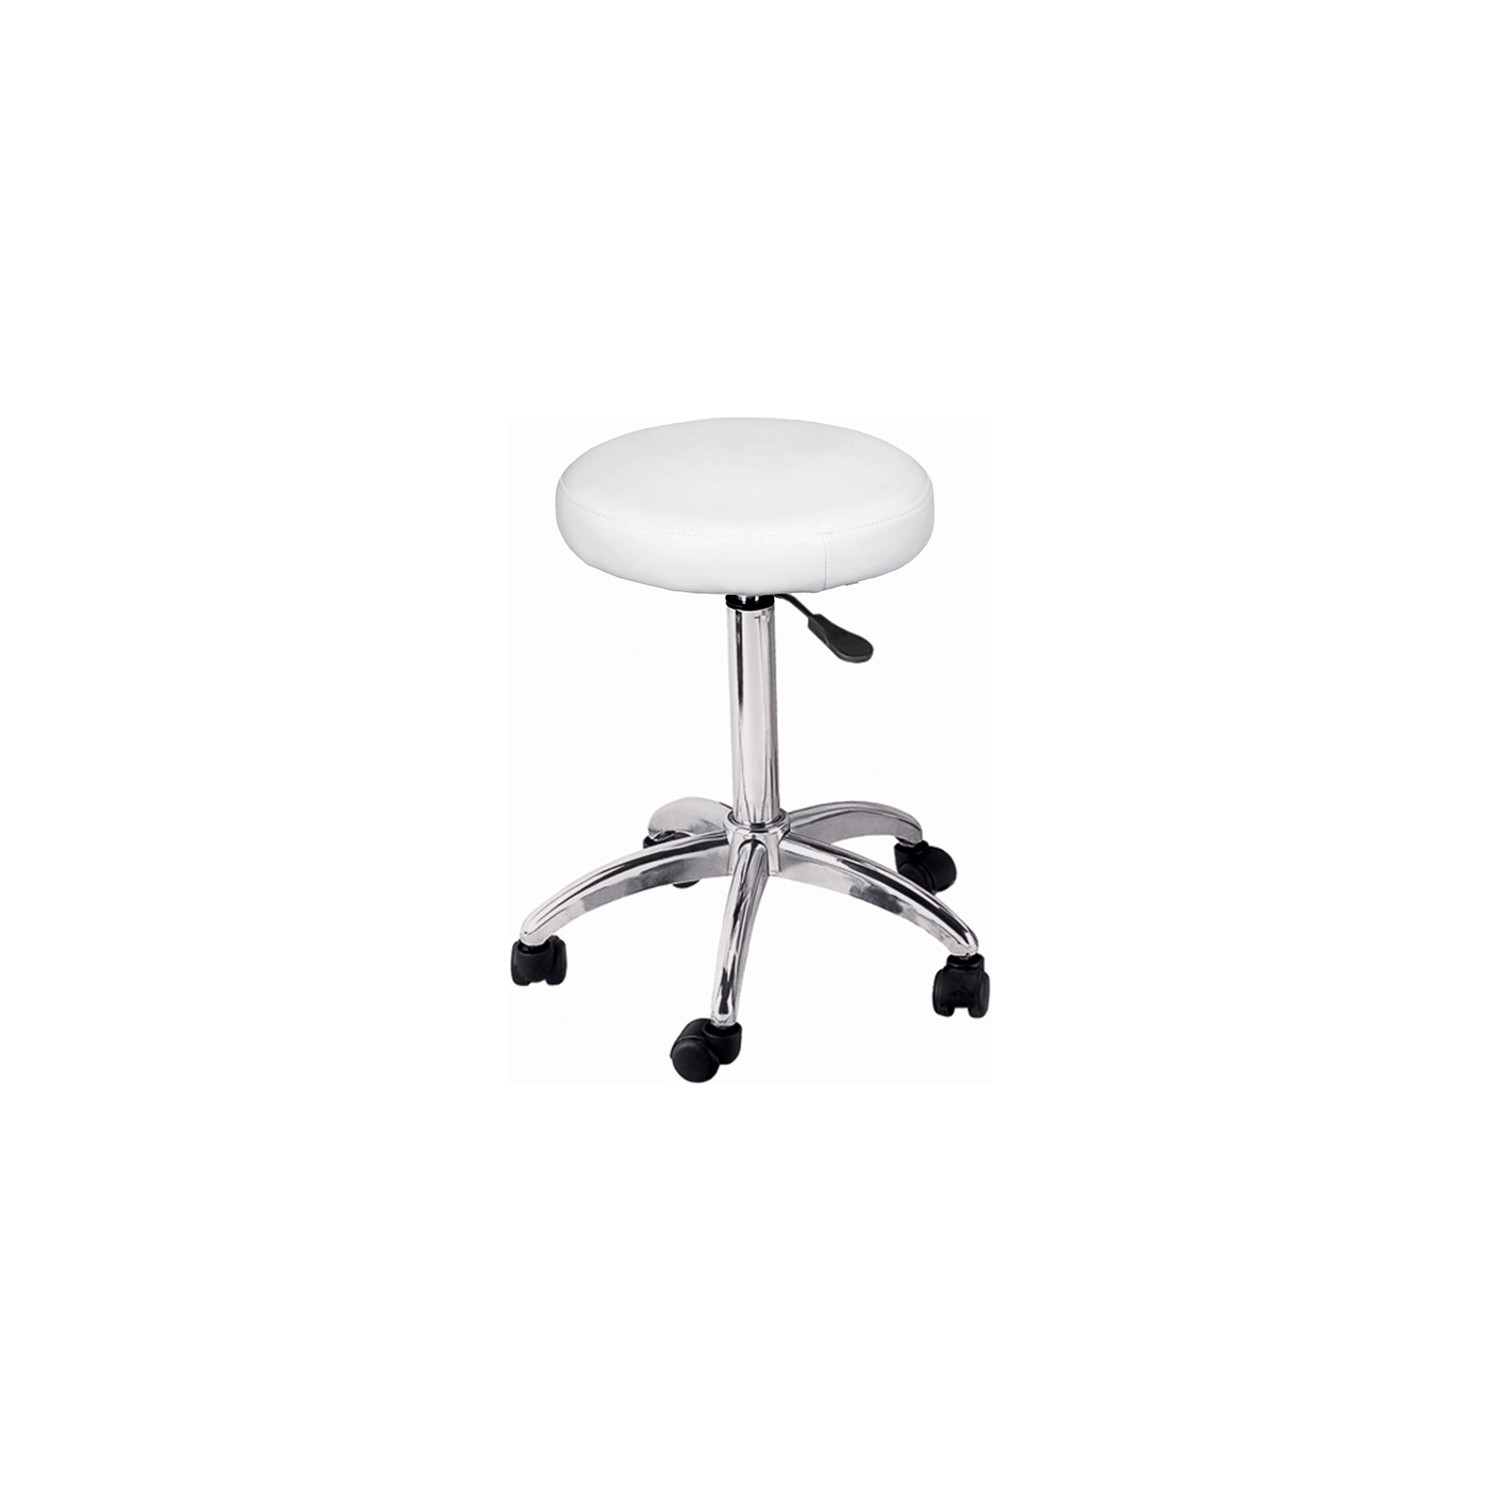 Adjustable Round Stool on Wheels  main product image